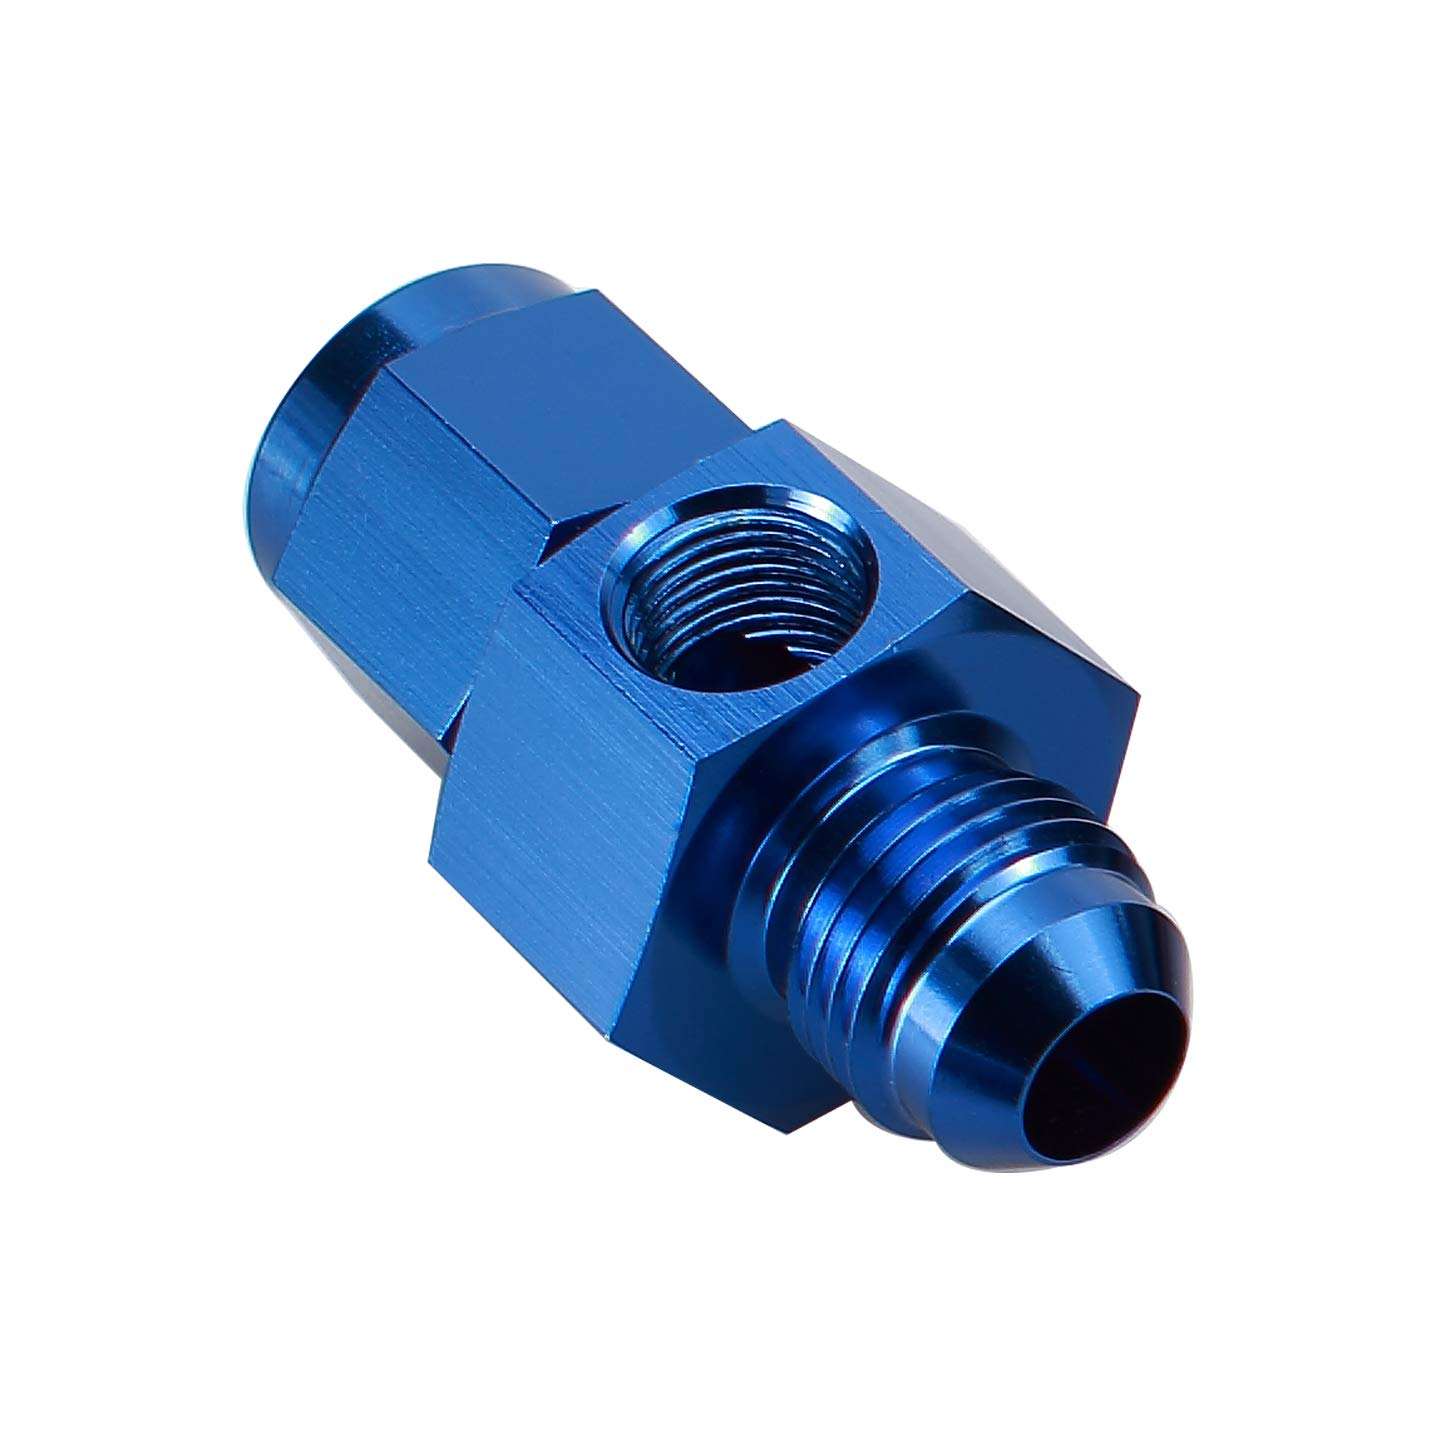 Blue Aluminum 45 Degree Elbow One Piece Full Flow Forged 6 AN AN6 Male Flare Coupling Pipe Union Equal Fittings